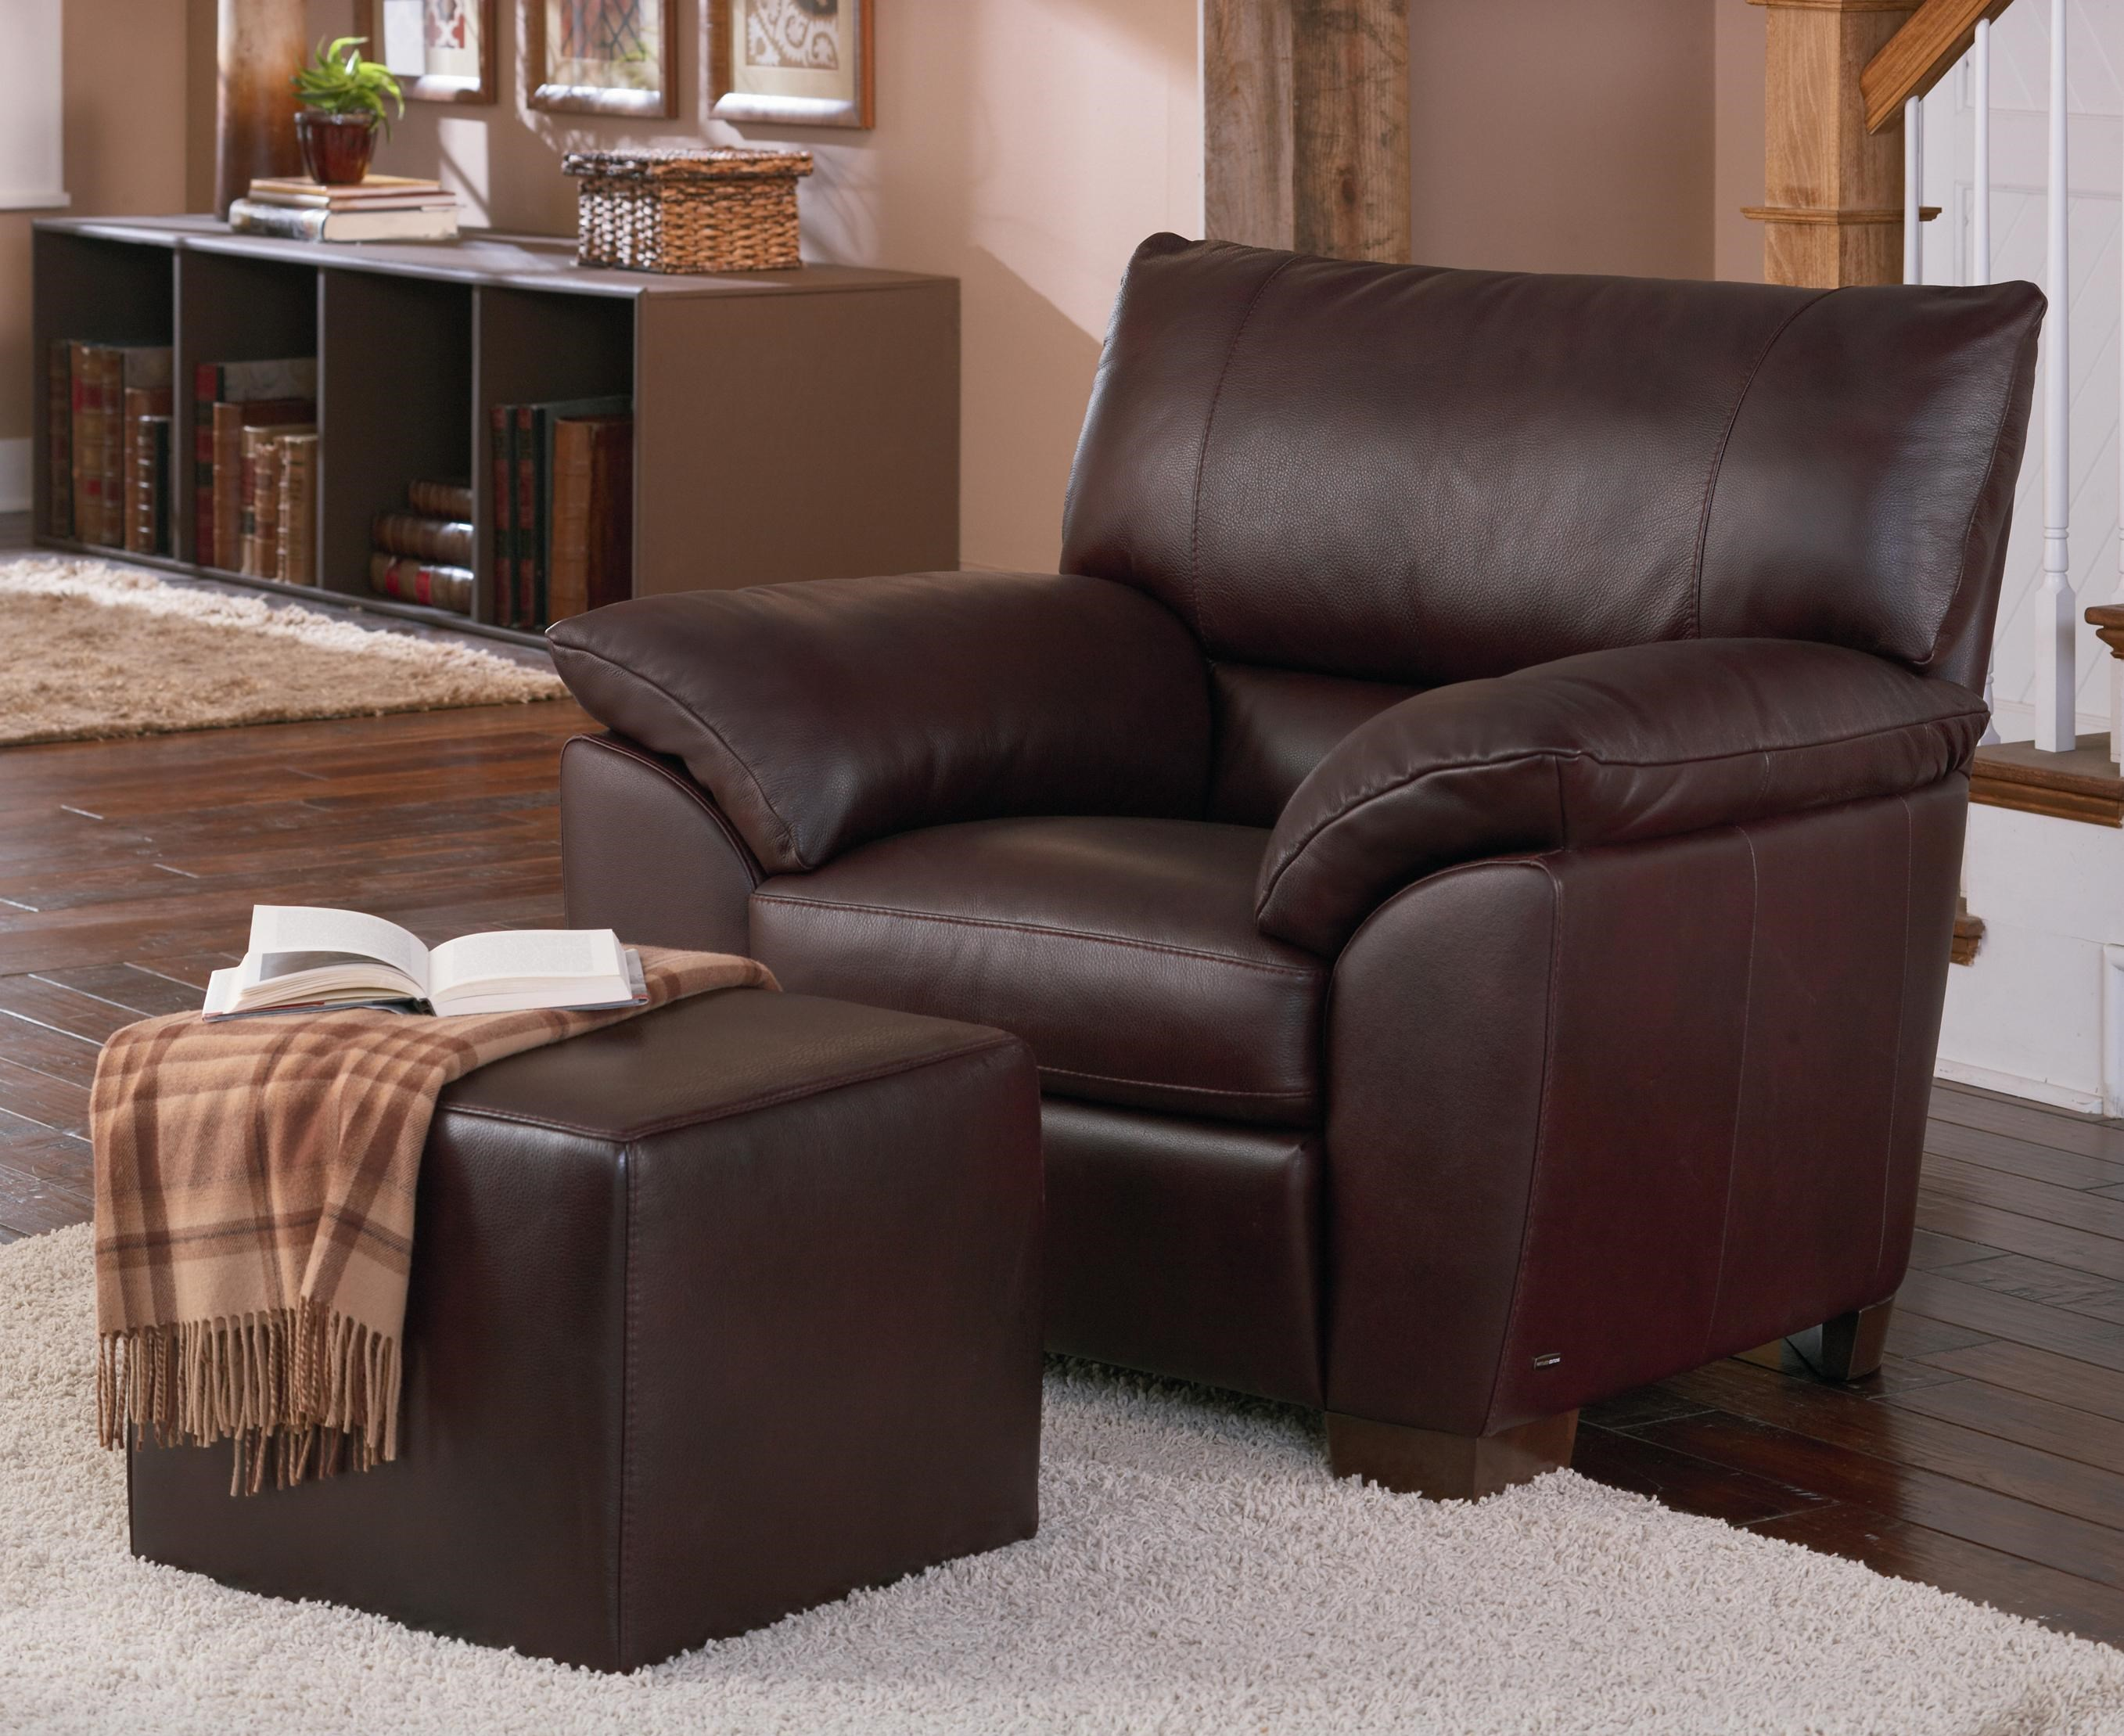 Genial Natuzzi Editions B632Leather Chair And Ottoman